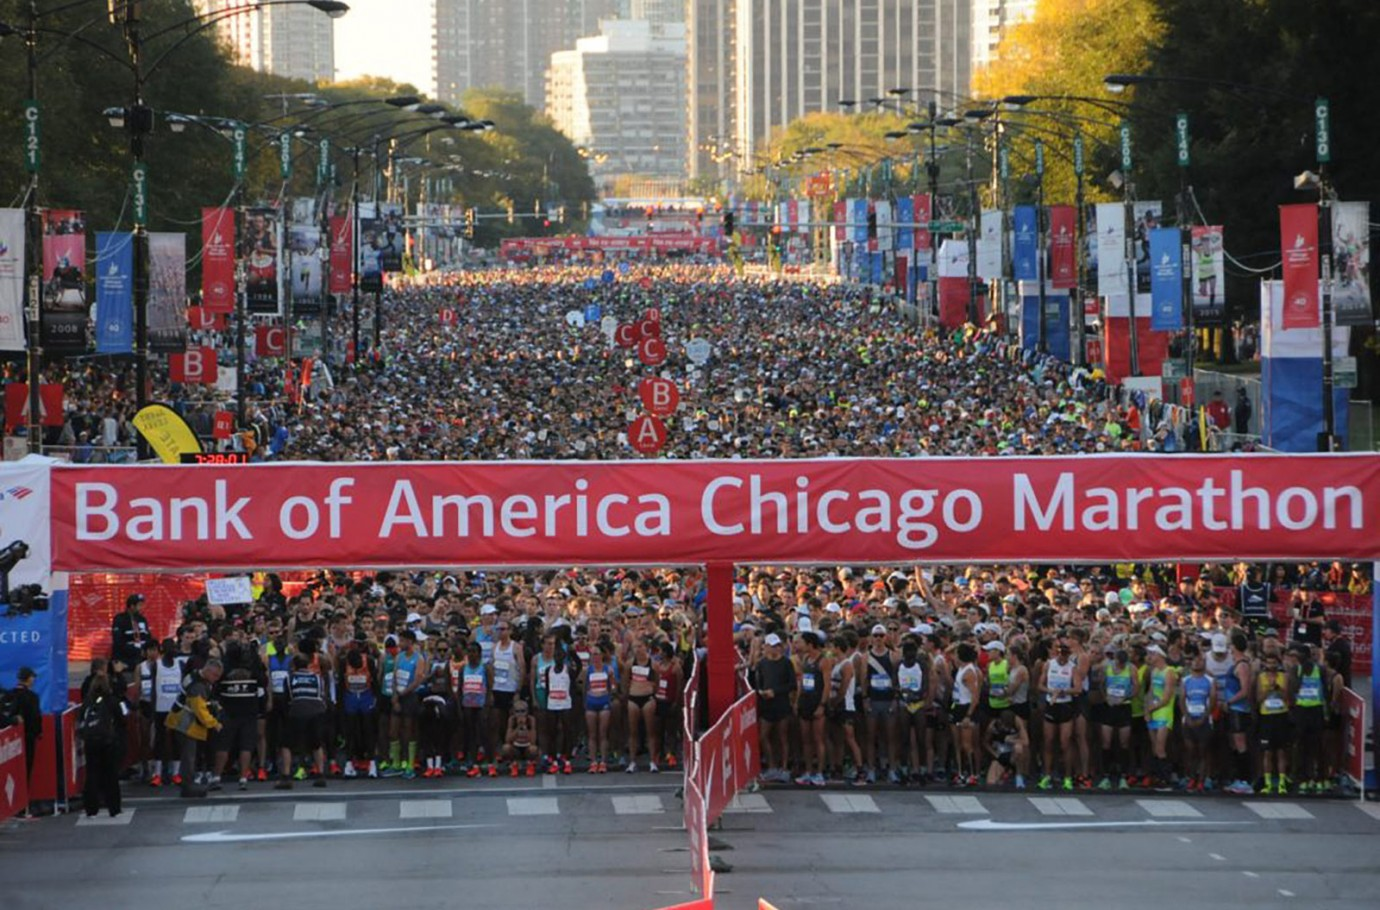 How to Get Into the Chicago Marathon